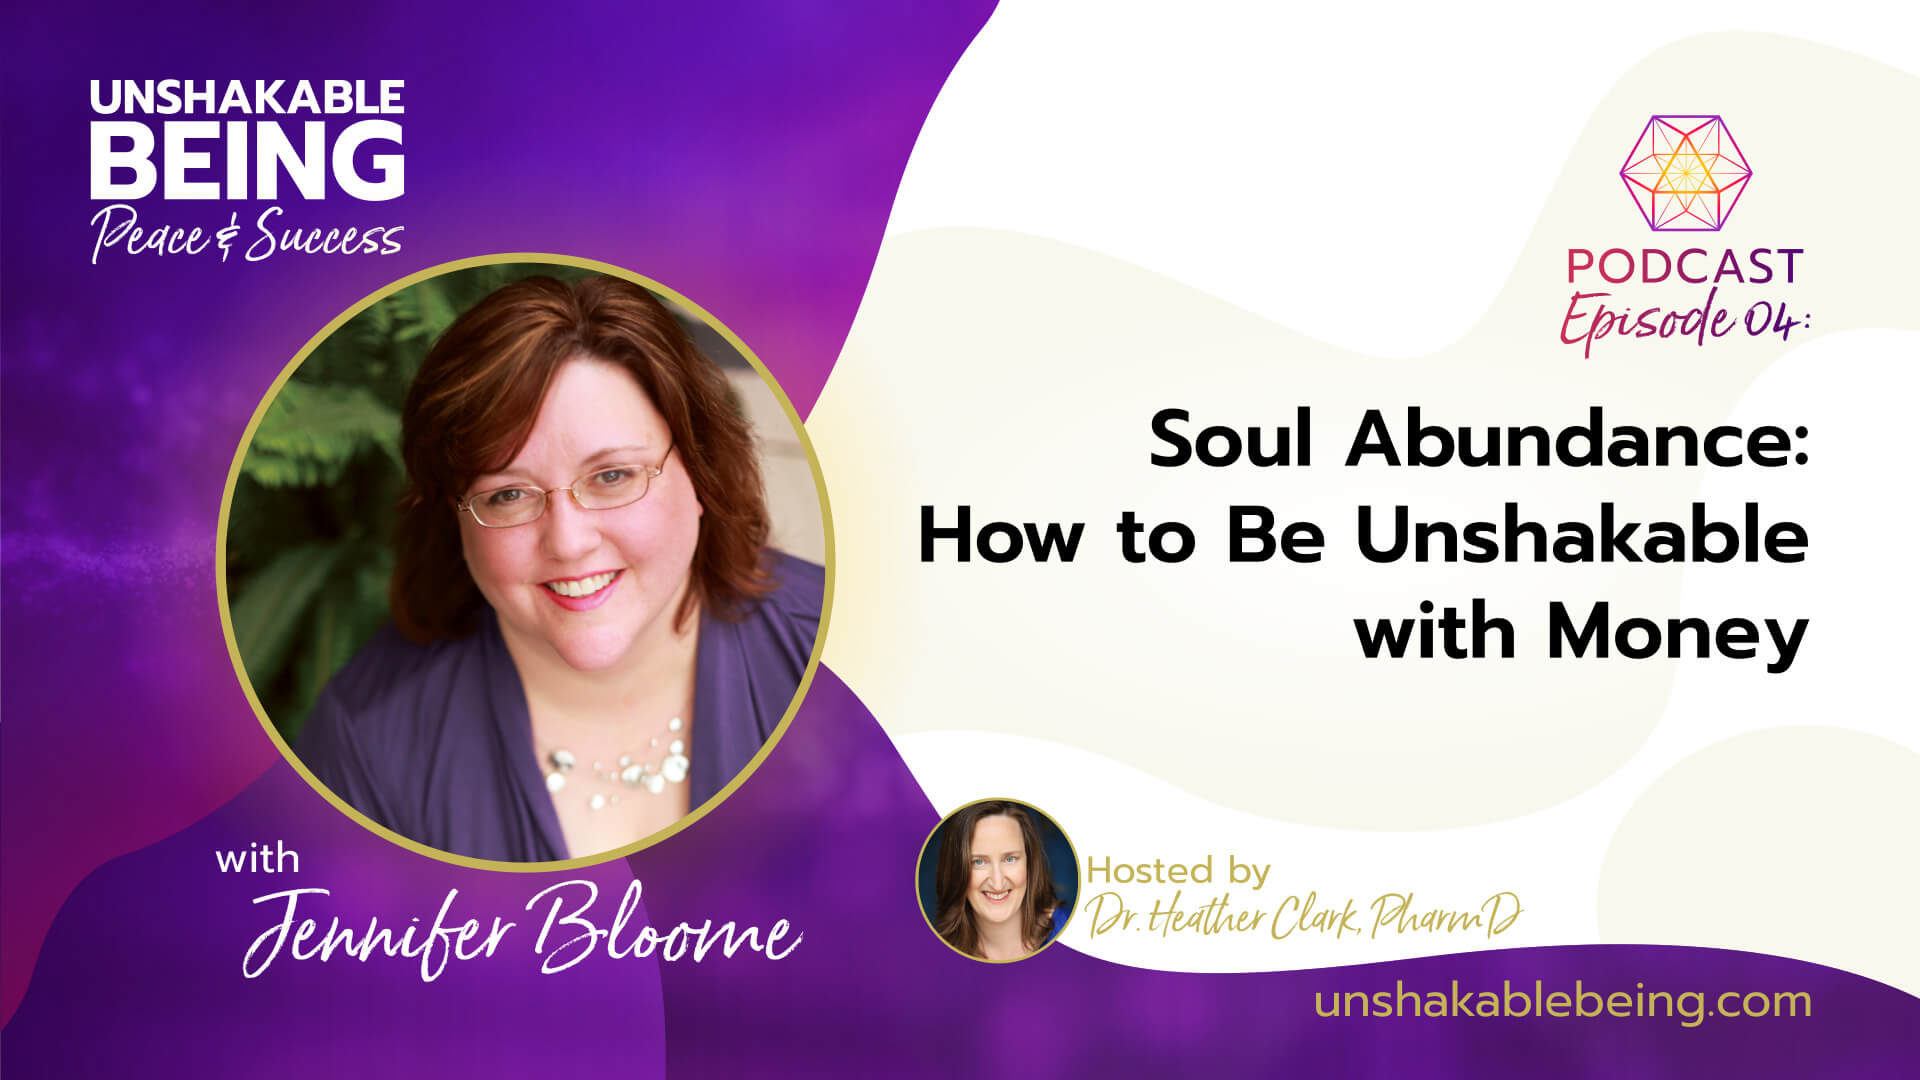 Soul Abundance: How to Be Unshakable with Money with Jennifer Bloome